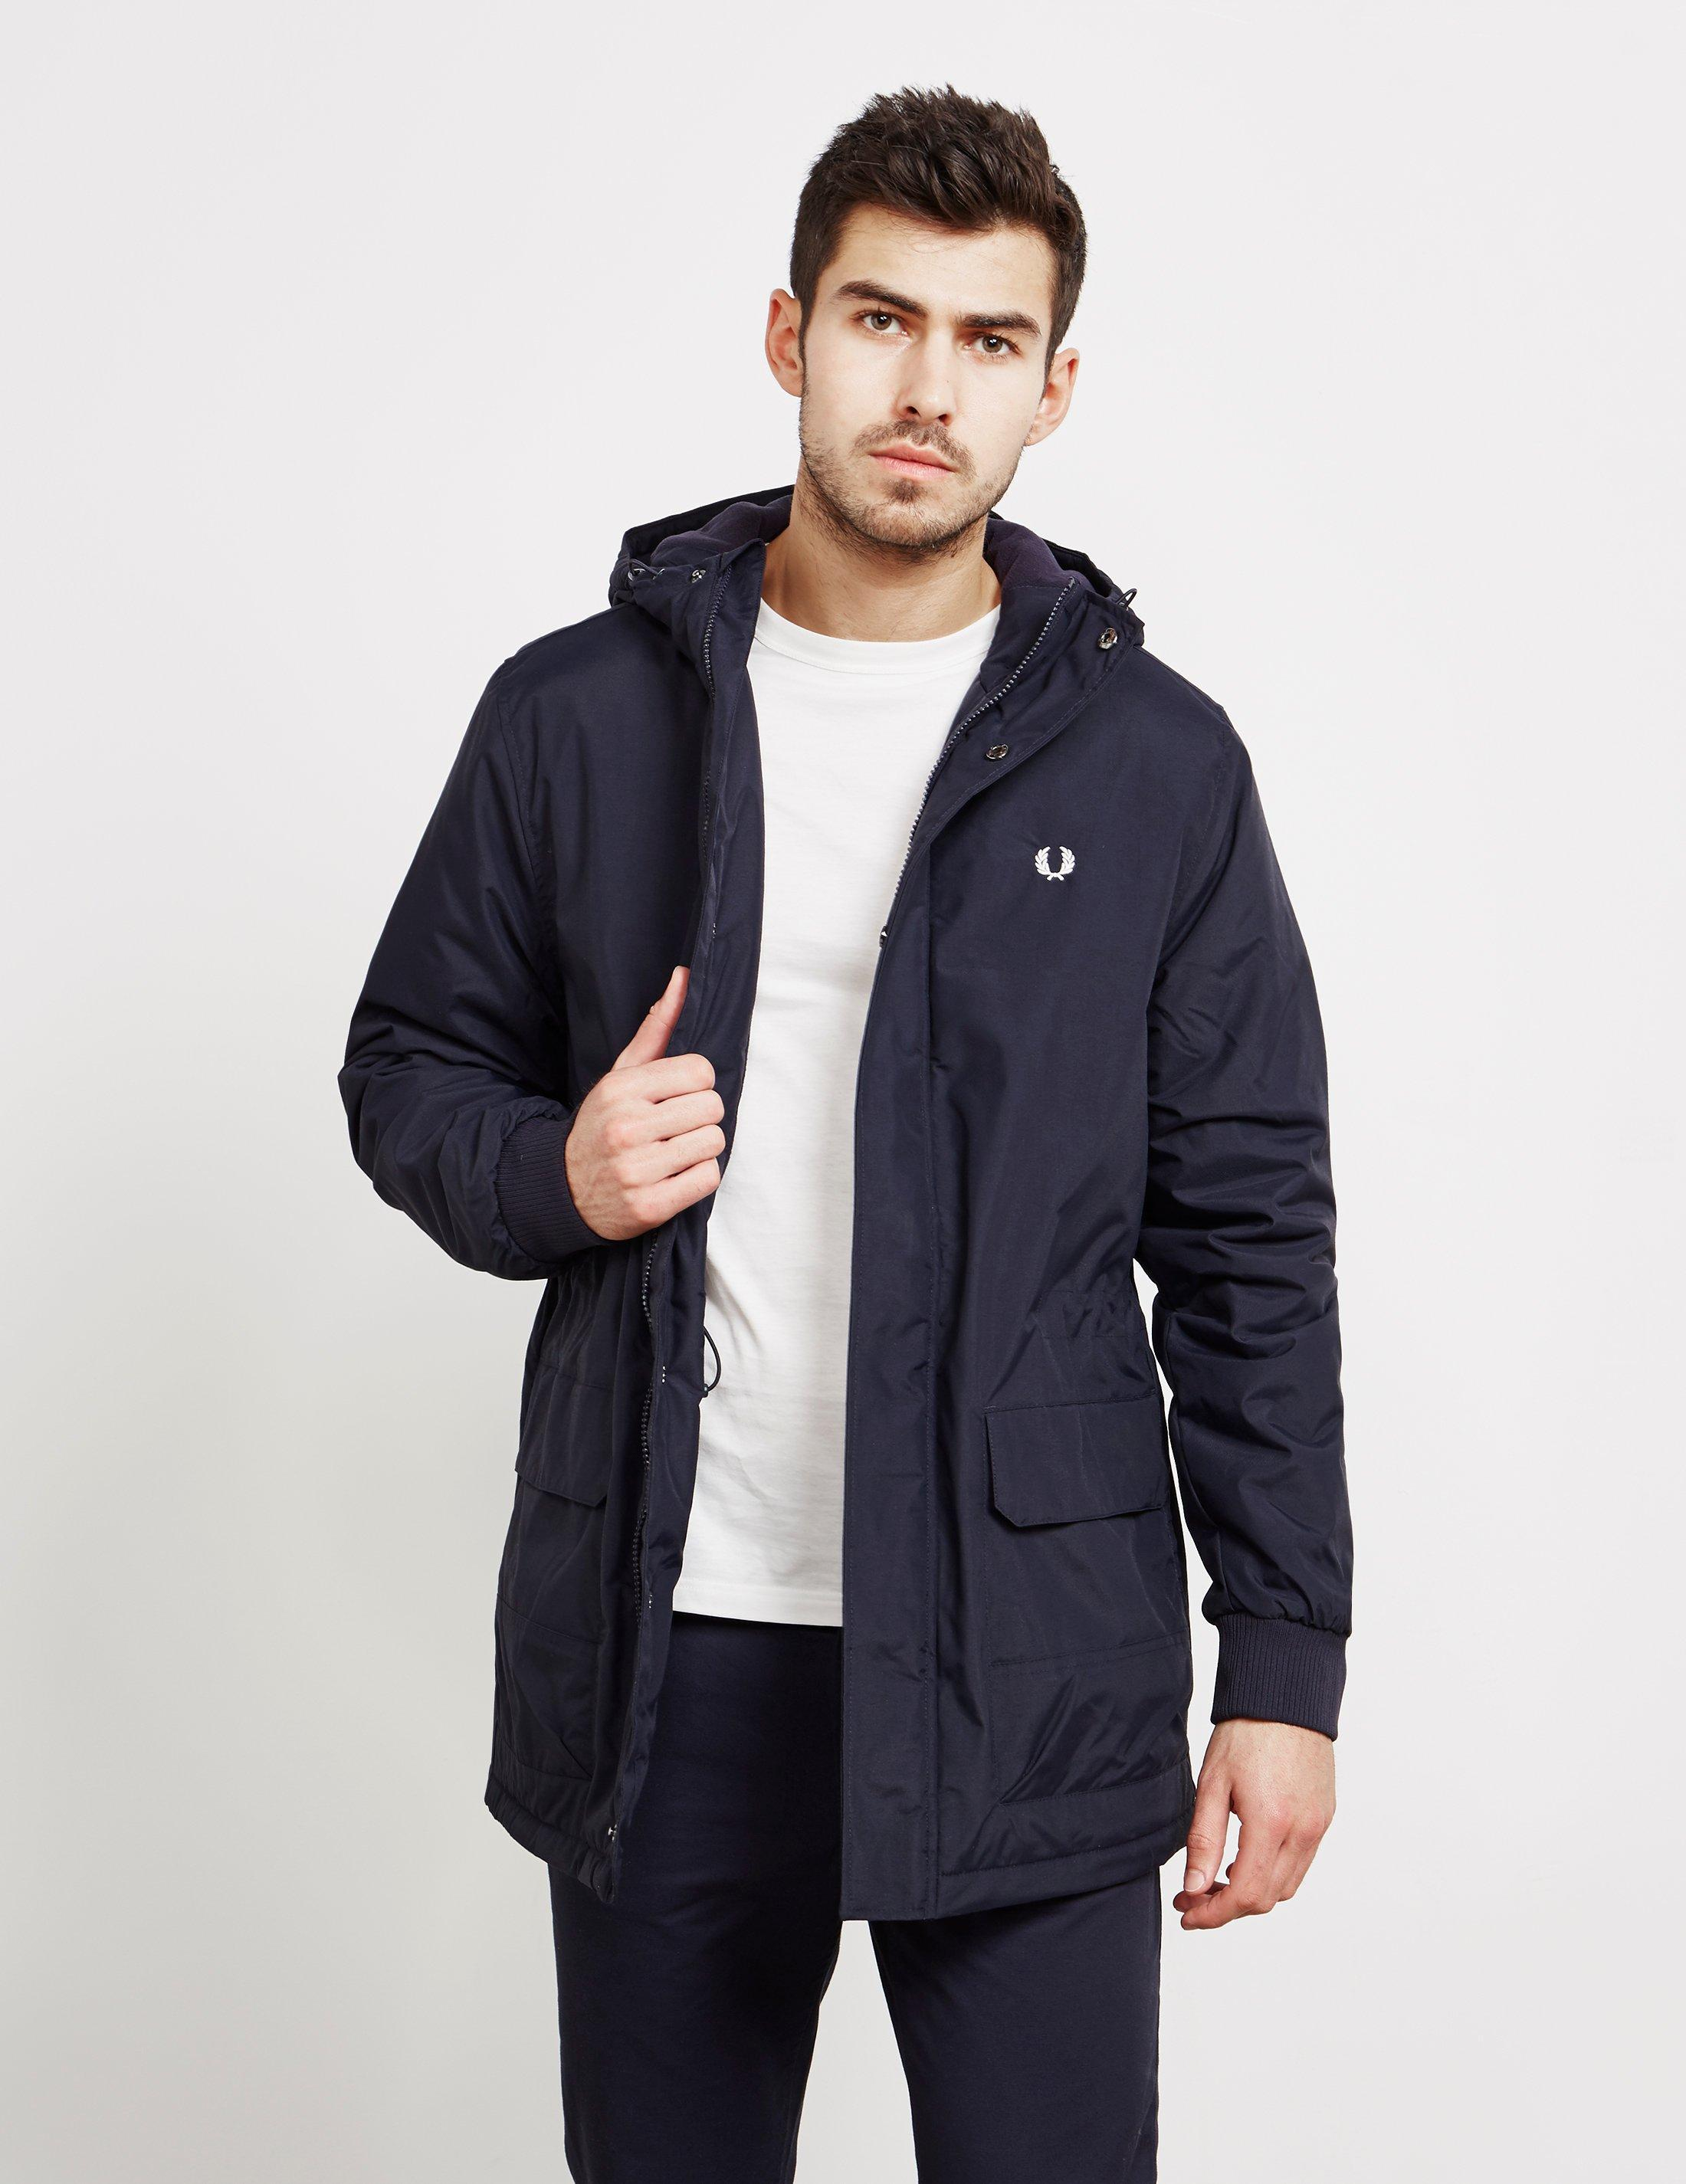 a0aa3cdbb4aa Fred Perry Stockport Lightweight Jacket Navy Blue in Blue for Men - Lyst